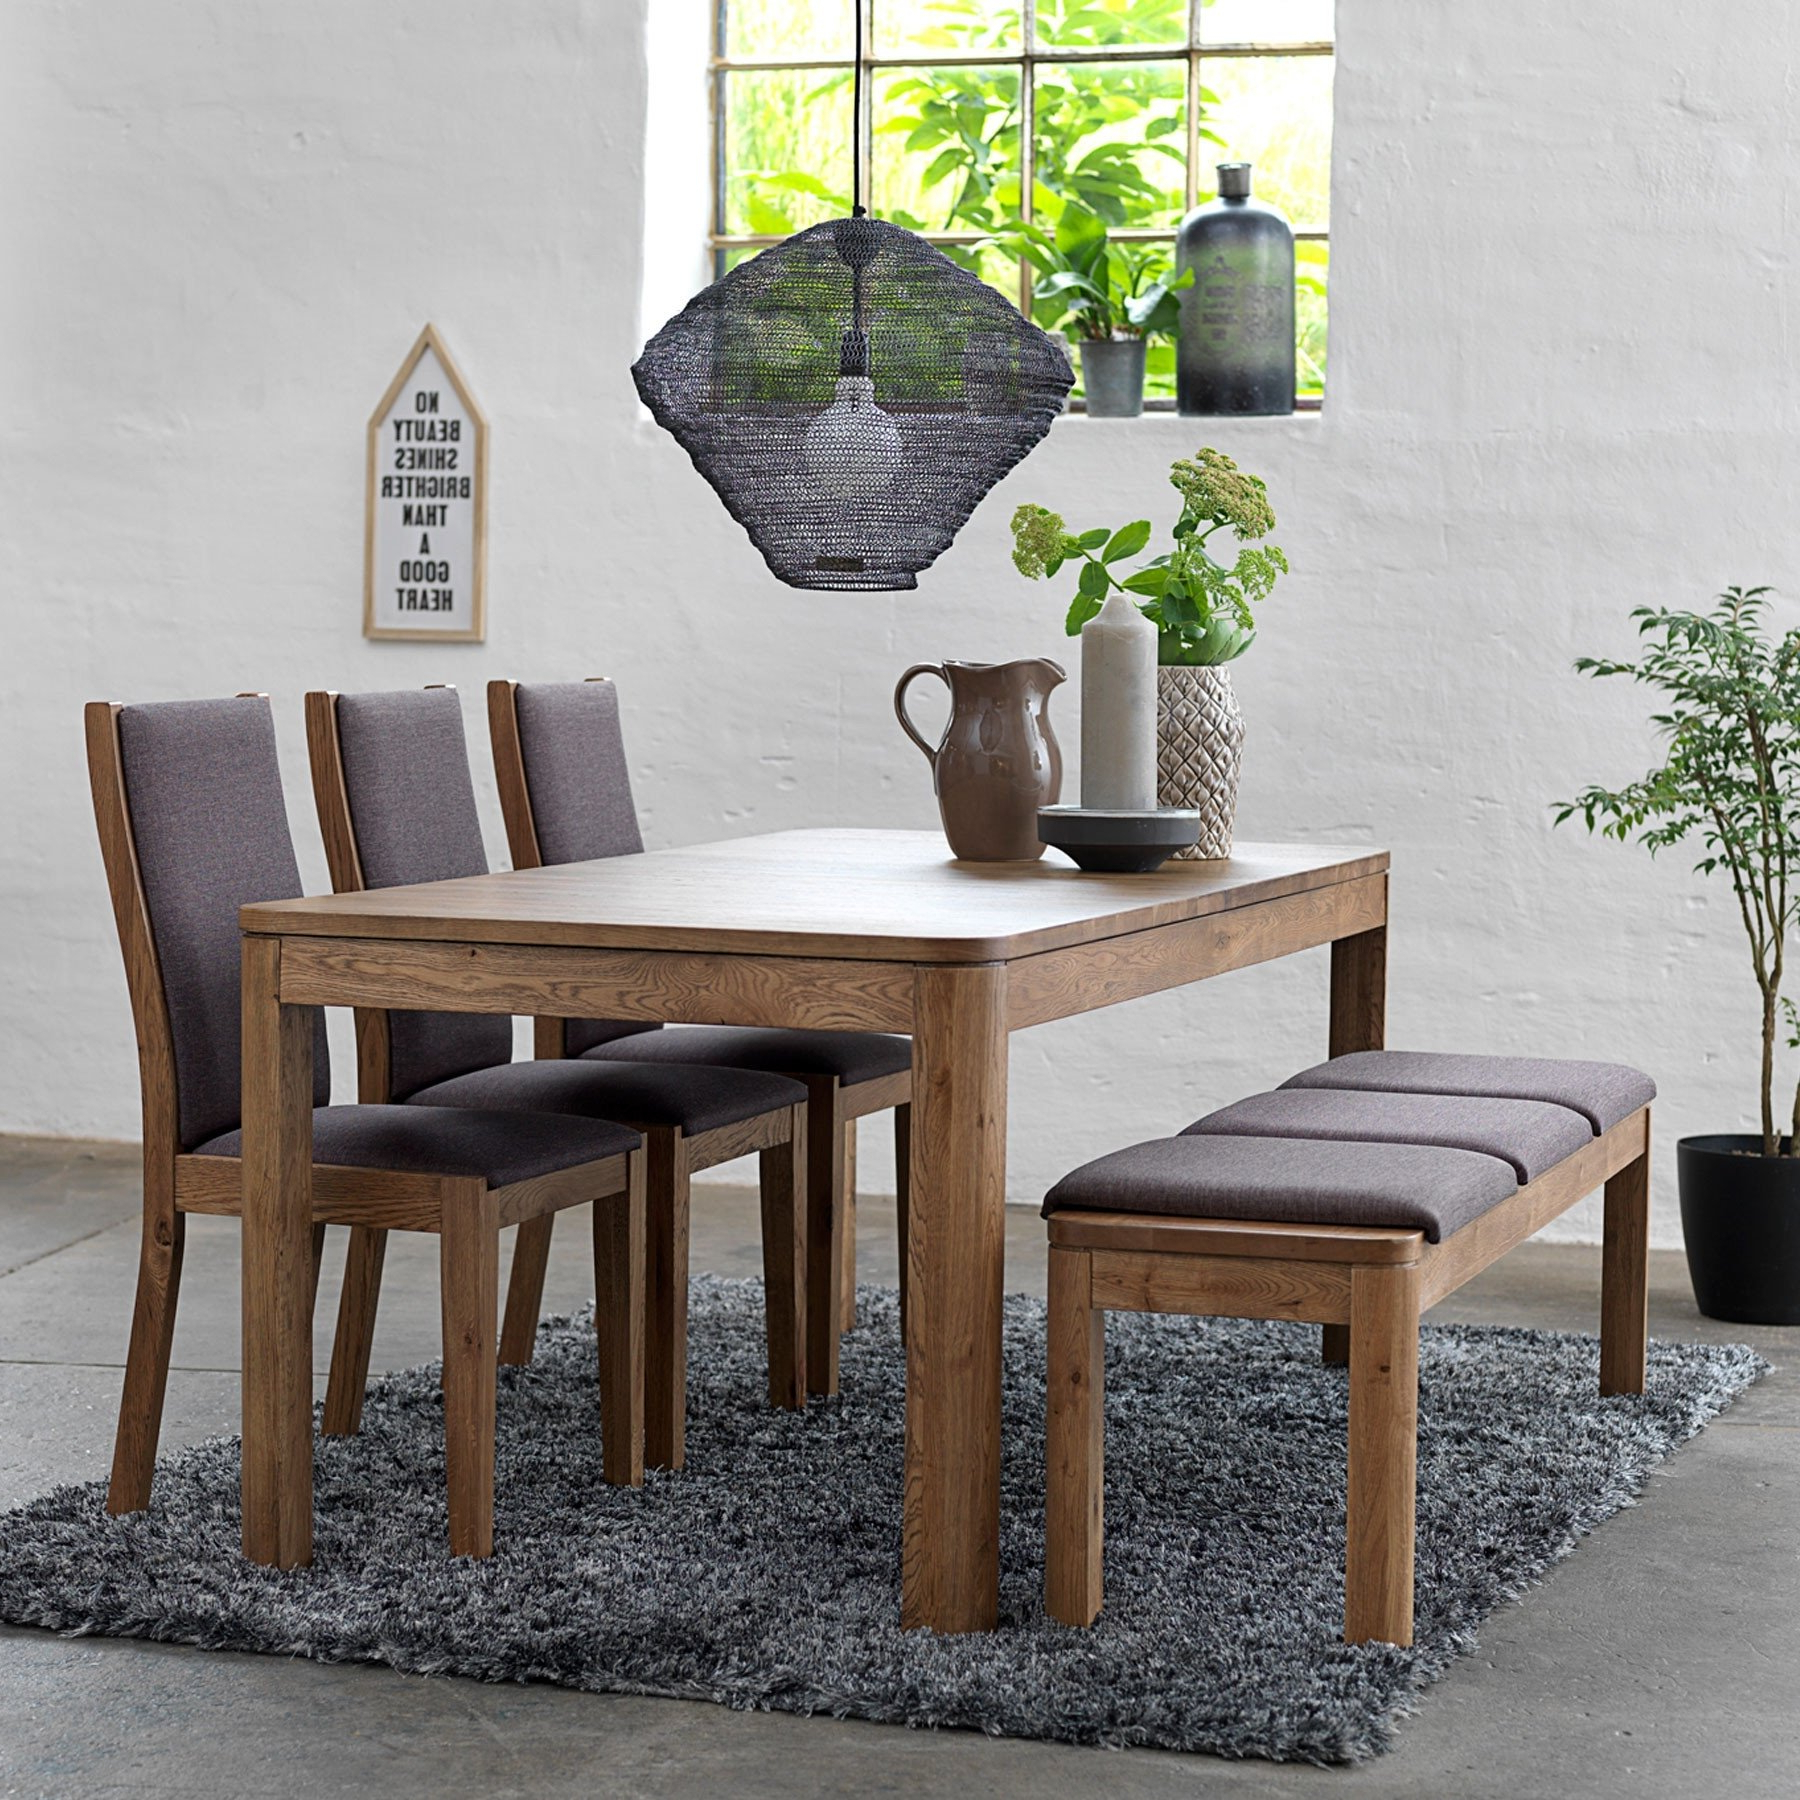 Most Recent 6 Seater Retangular Wood Contemporary Dining Tables Pertaining To 50+ Dining Table With Bench You'll Love In 2020 – Visual Hunt (View 6 of 25)